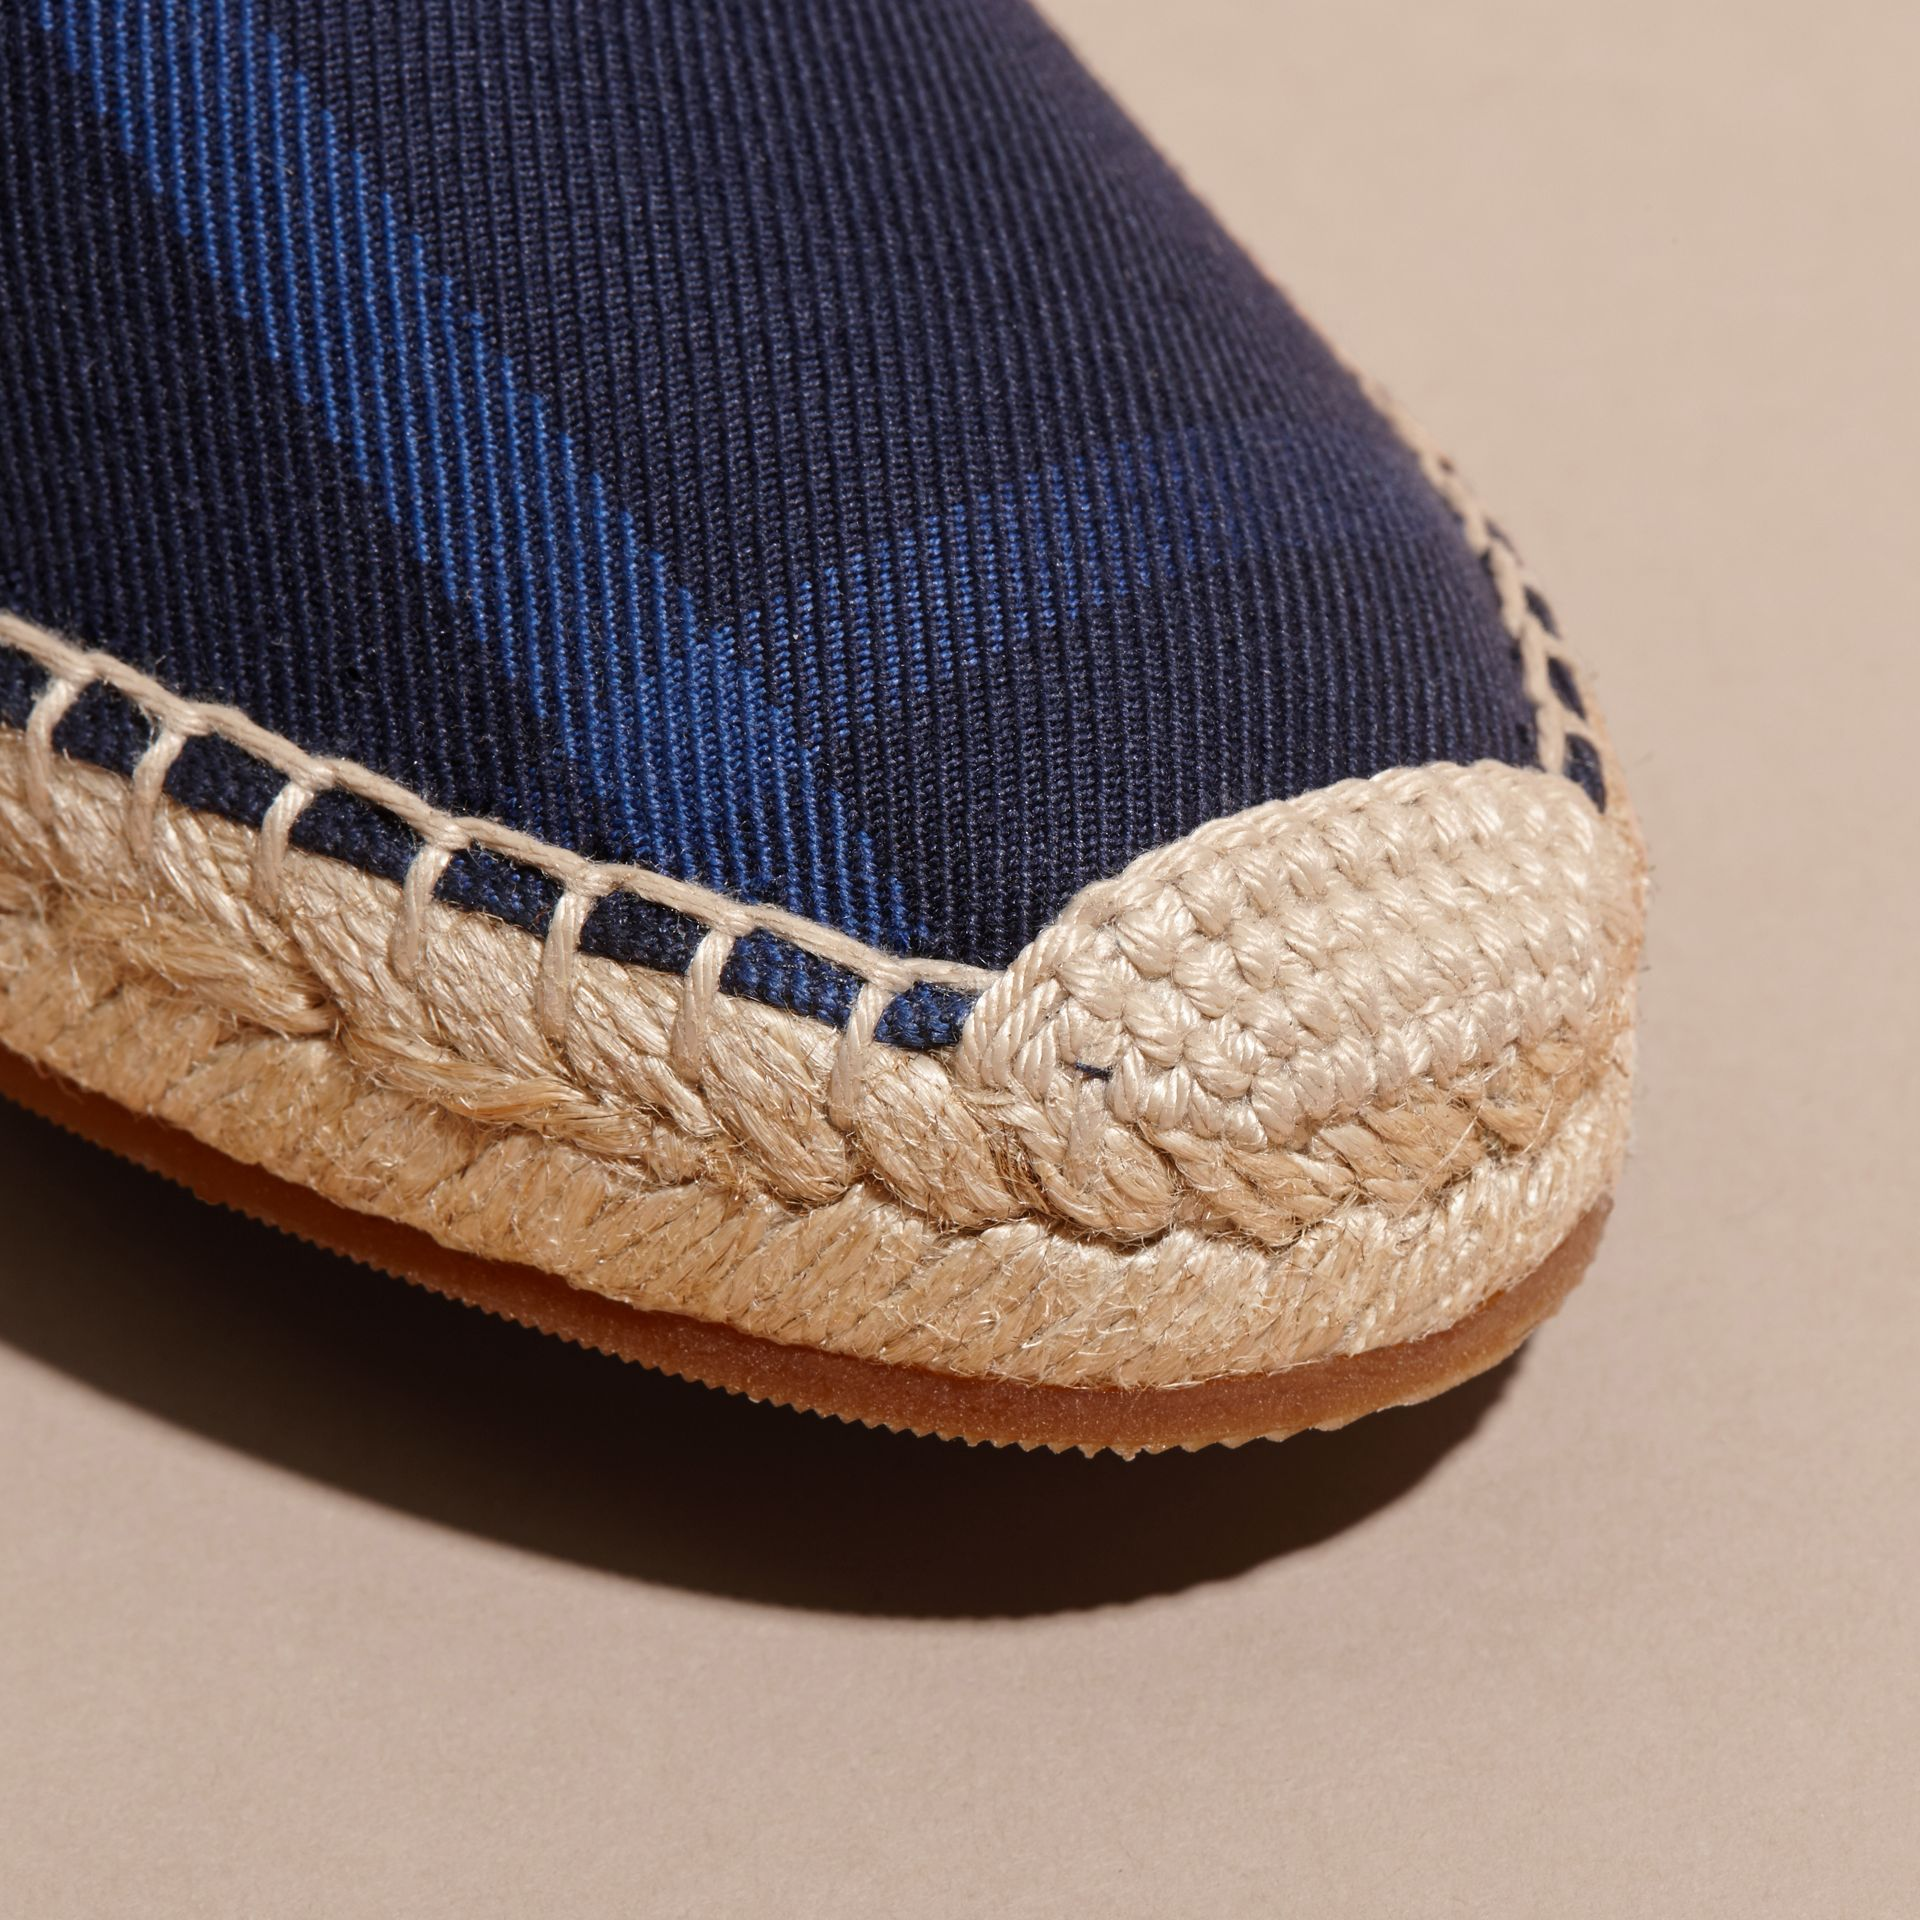 Indigo blue Leather Trim Canvas Check Espadrilles Indigo Blue - gallery image 2